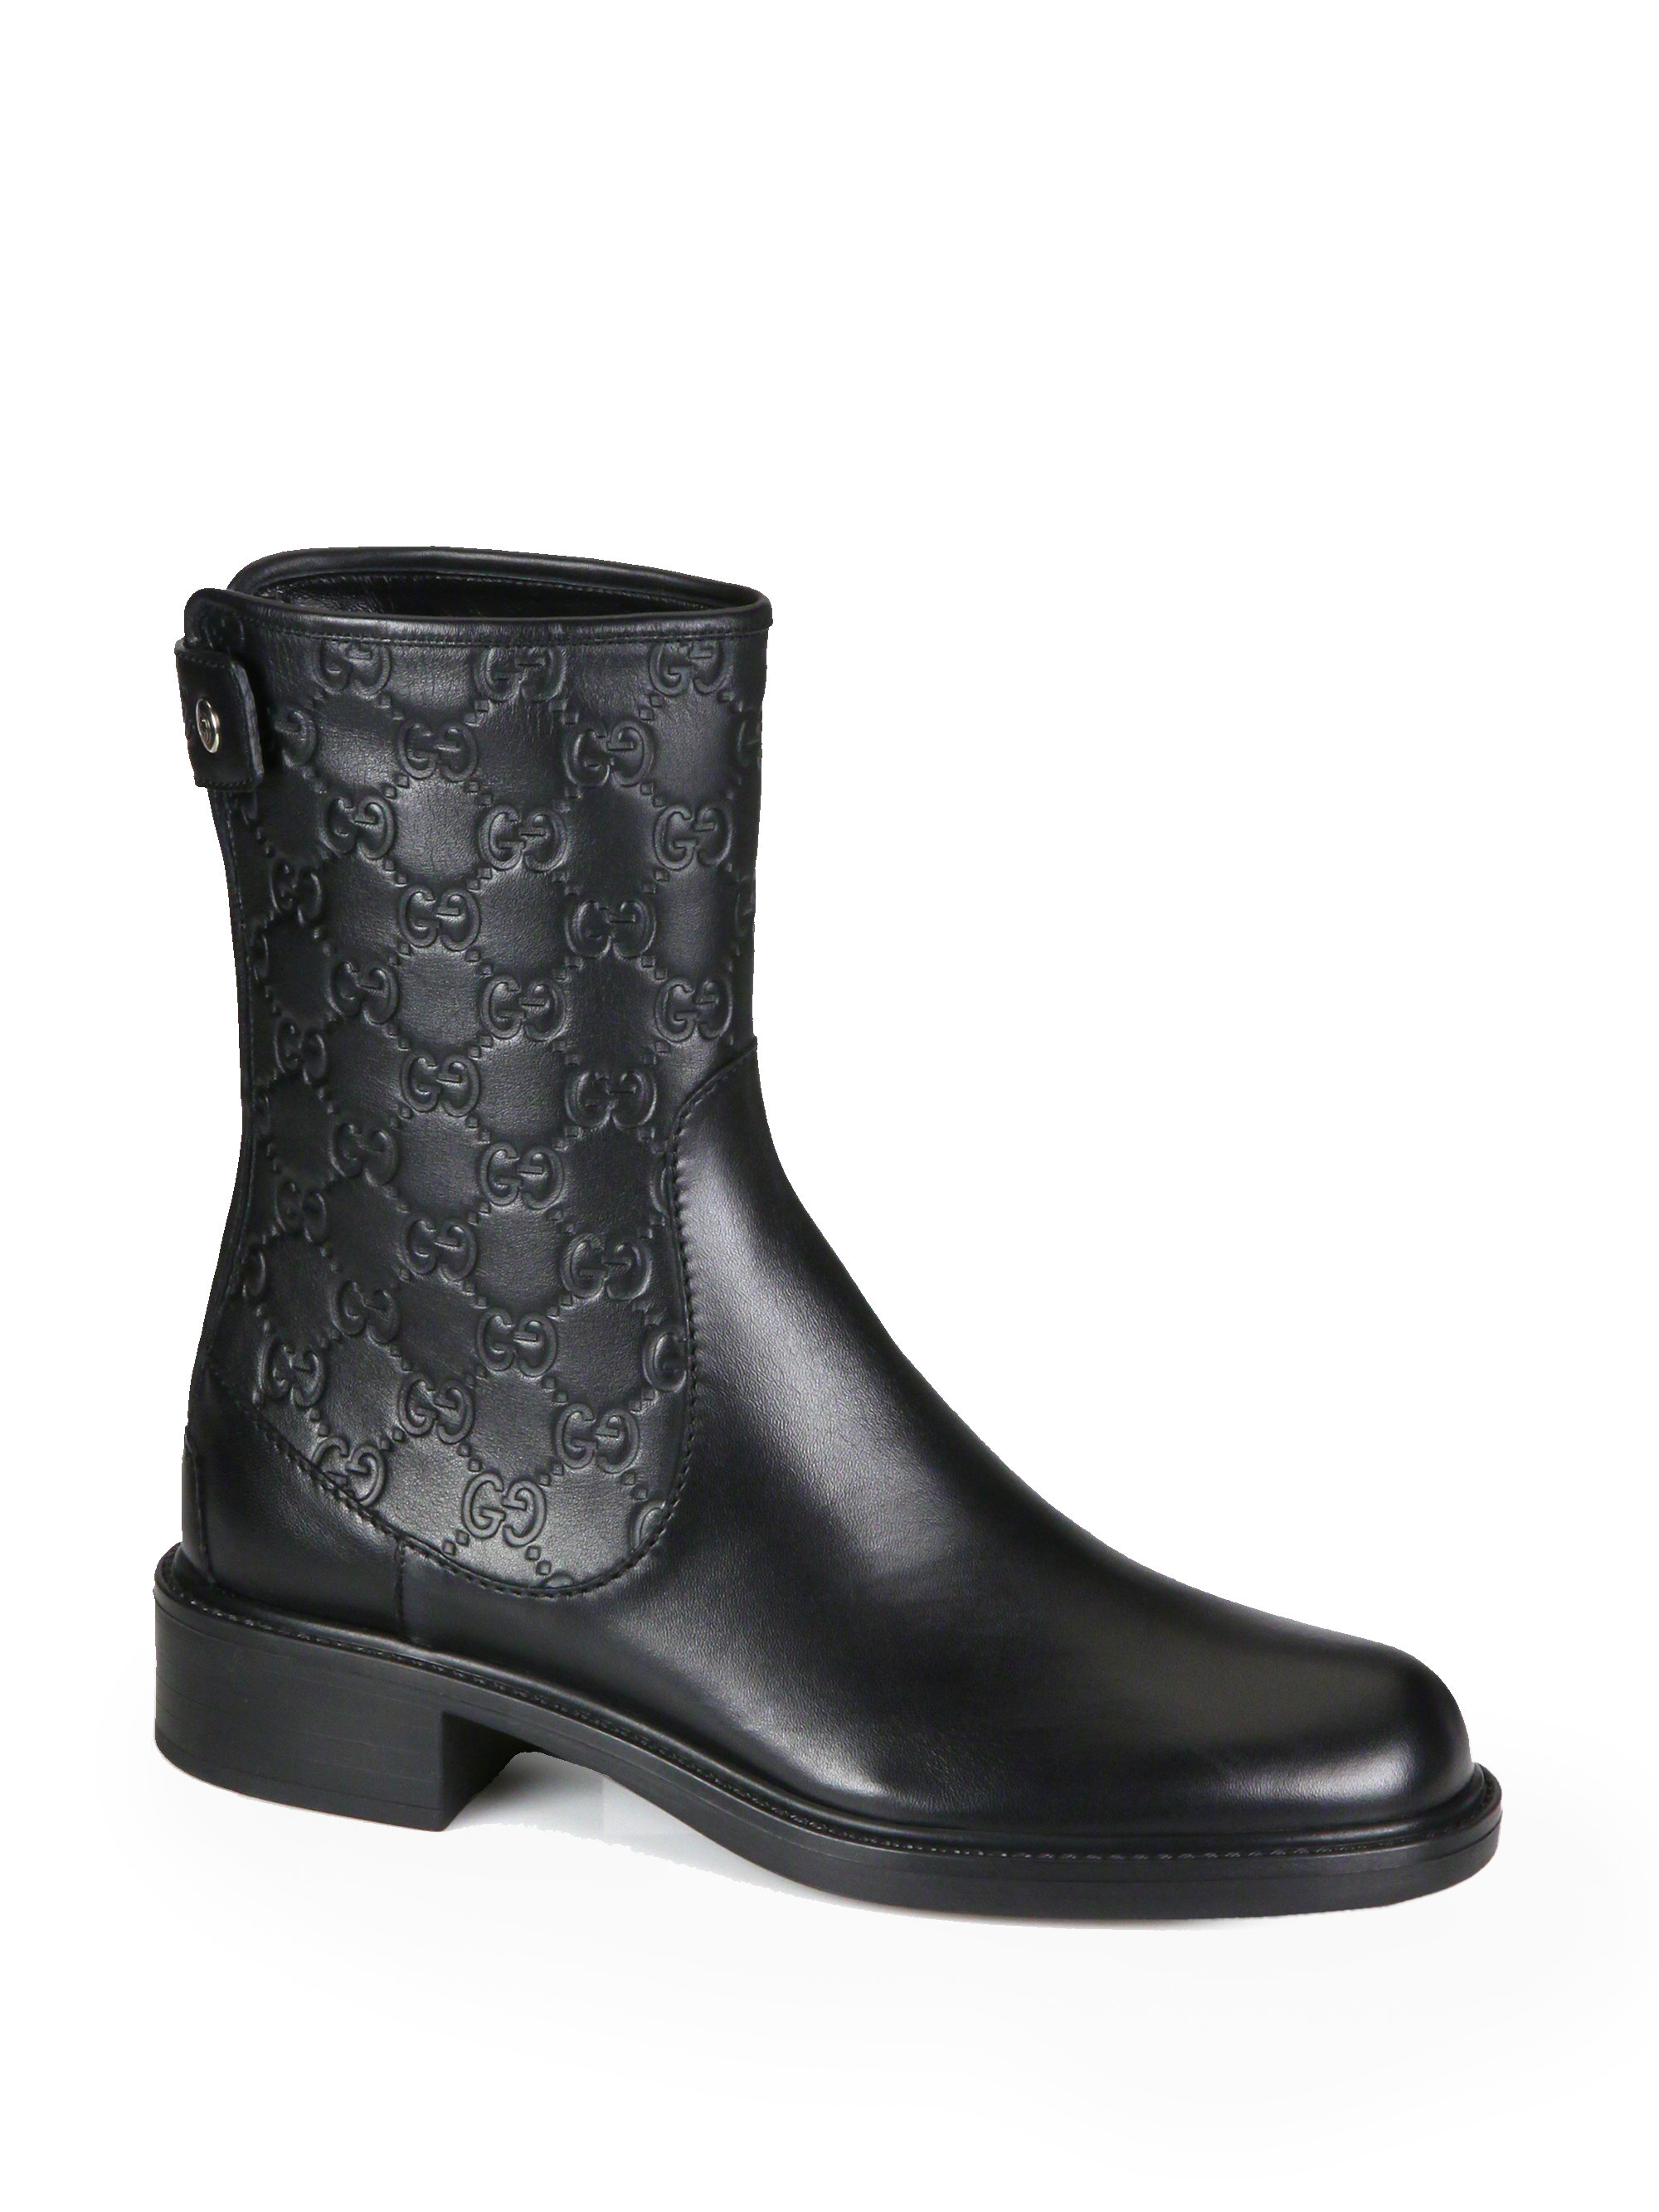 Gucci Gg Leather Ankle Boots in Black